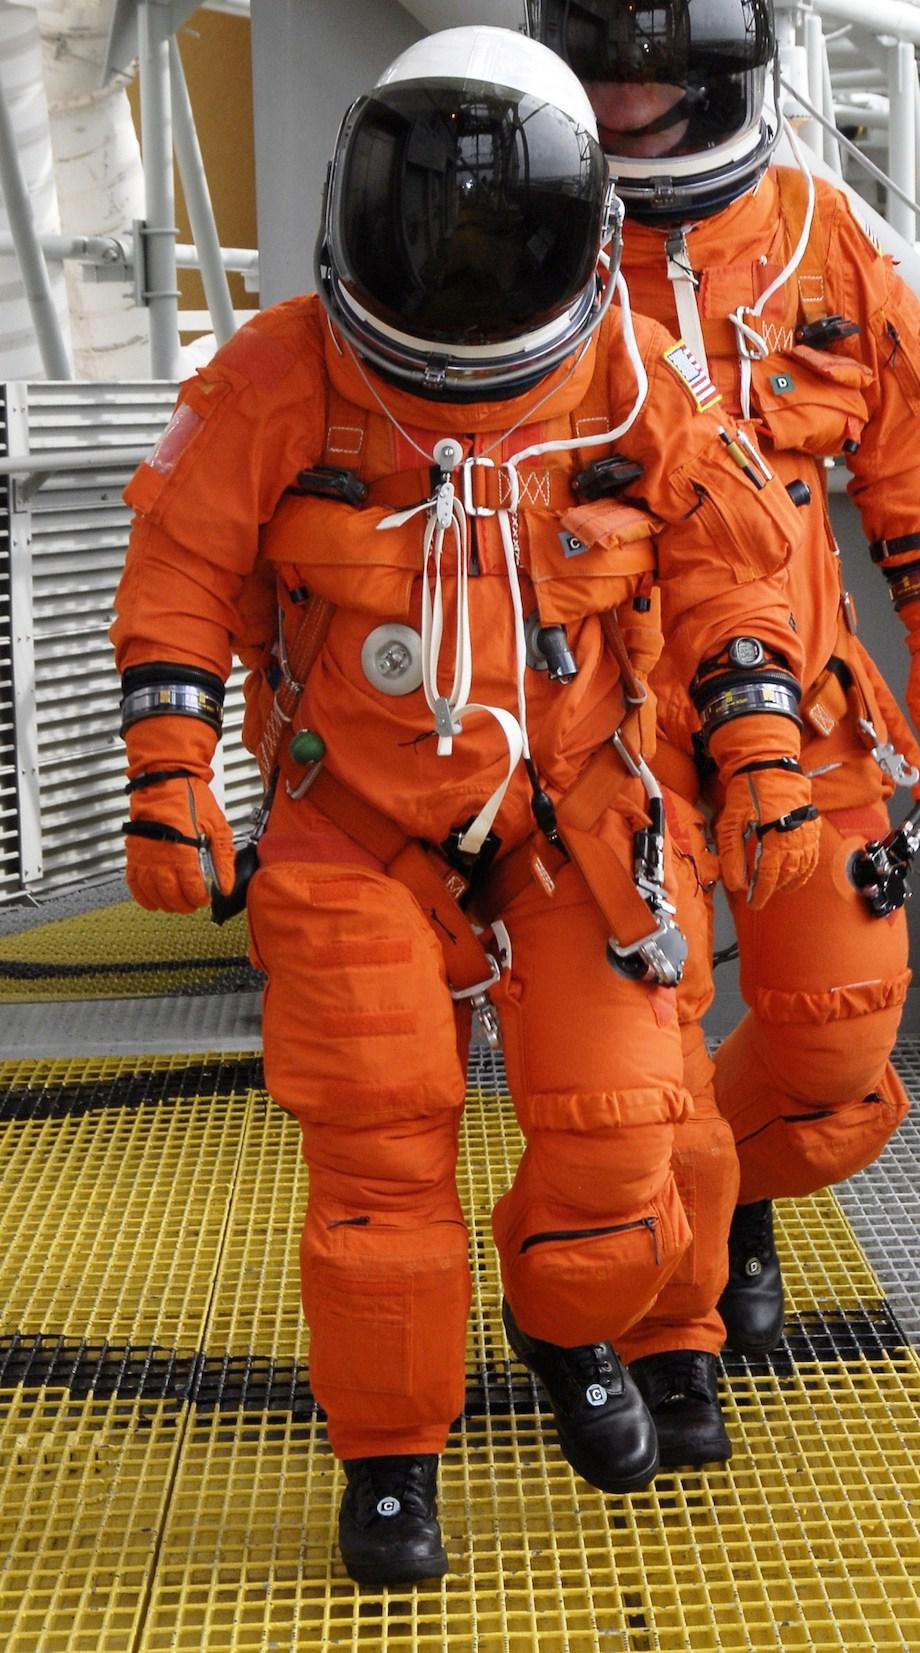 check-out-the-evolution-of-the-space-suit-41-hq-photos-23